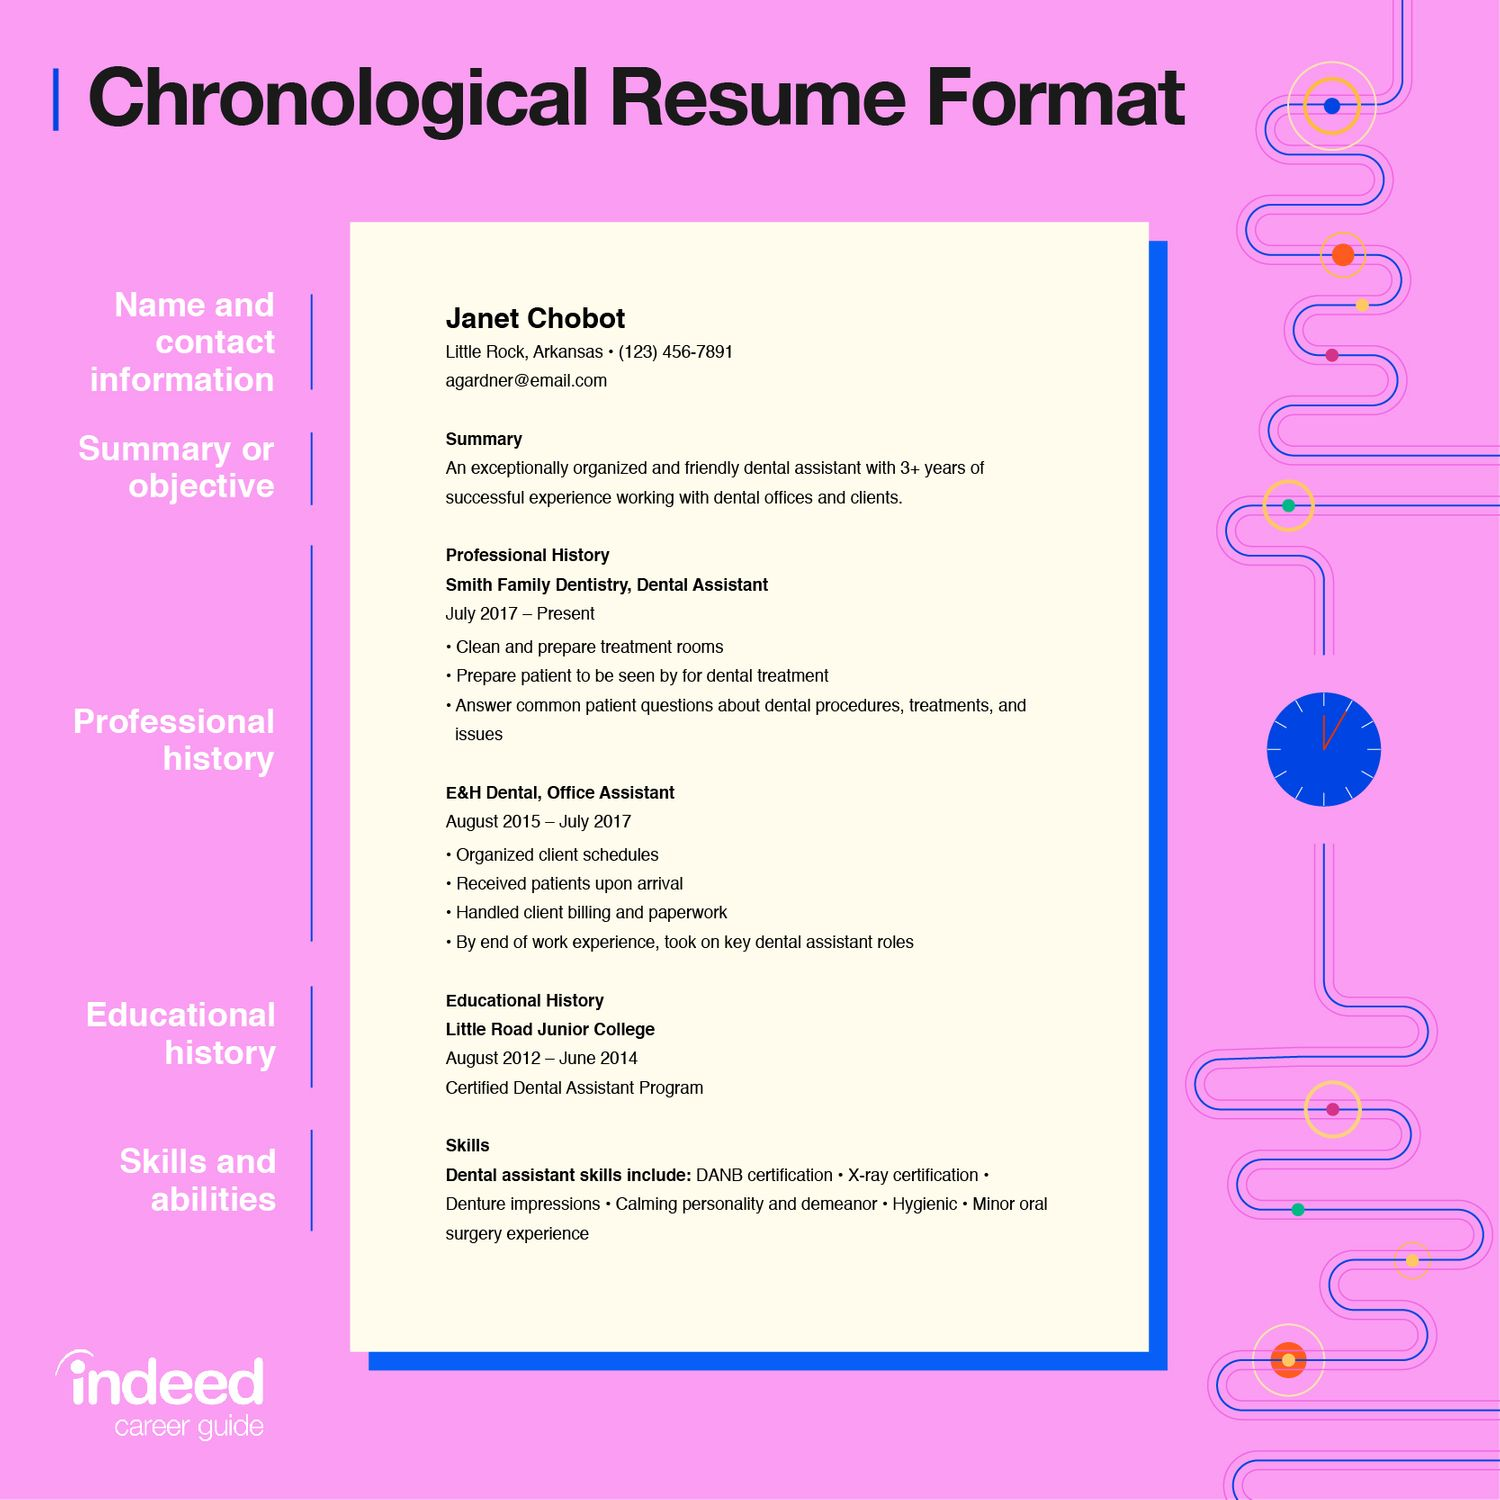 chronological resume tips and examples indeed current styles samples resized free design Resume Current Resume Styles Samples